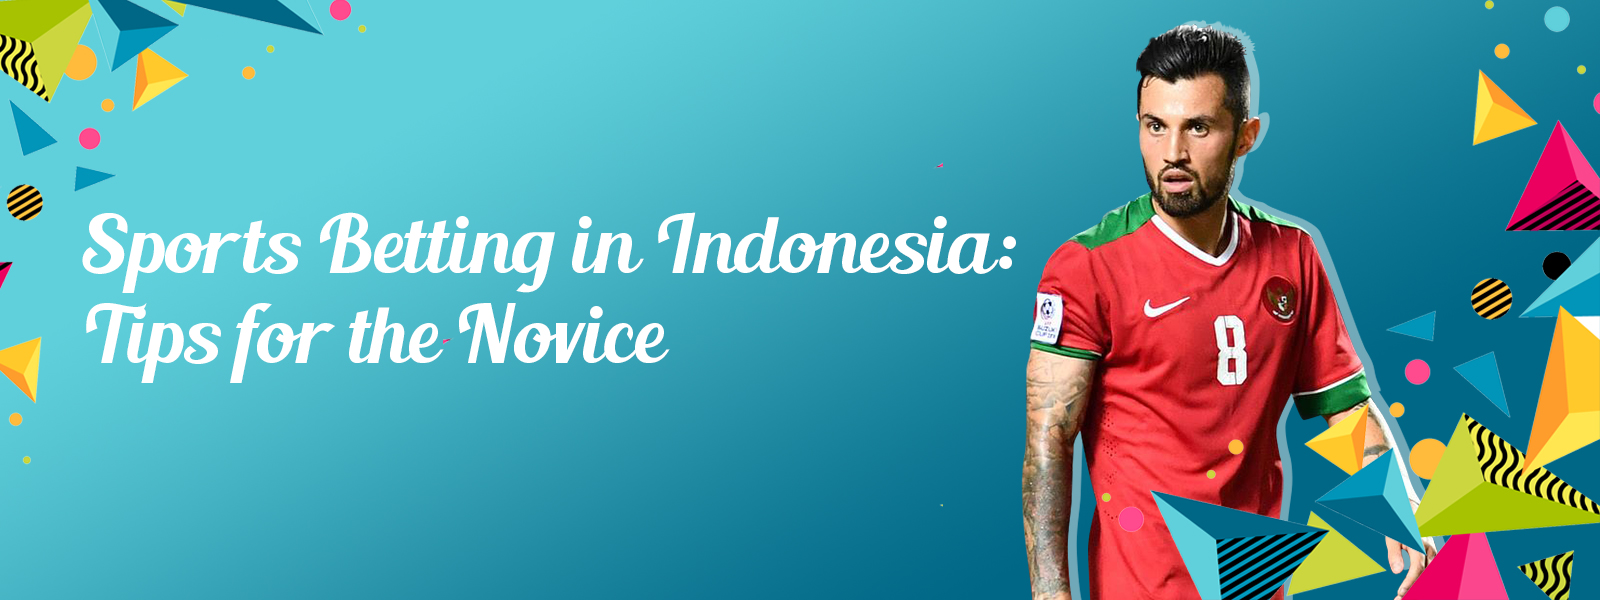 Sports Betting in Indonesia: Tips for the Novice